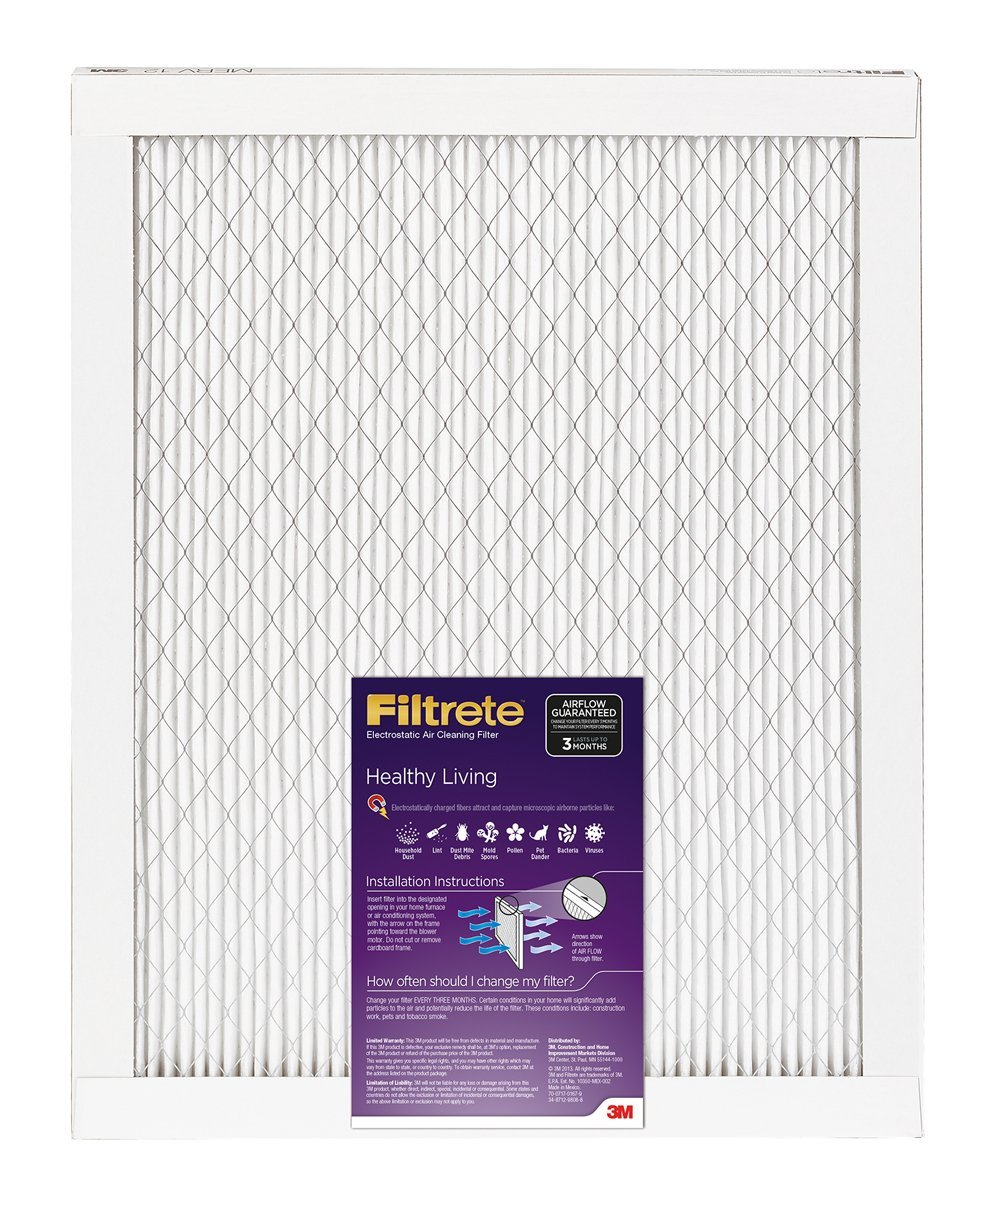 "Filtrete™ 2023-6 Healthy Living Ultra Allergen Filter, 14""x24""x1"", Purple, 1500 MPR"